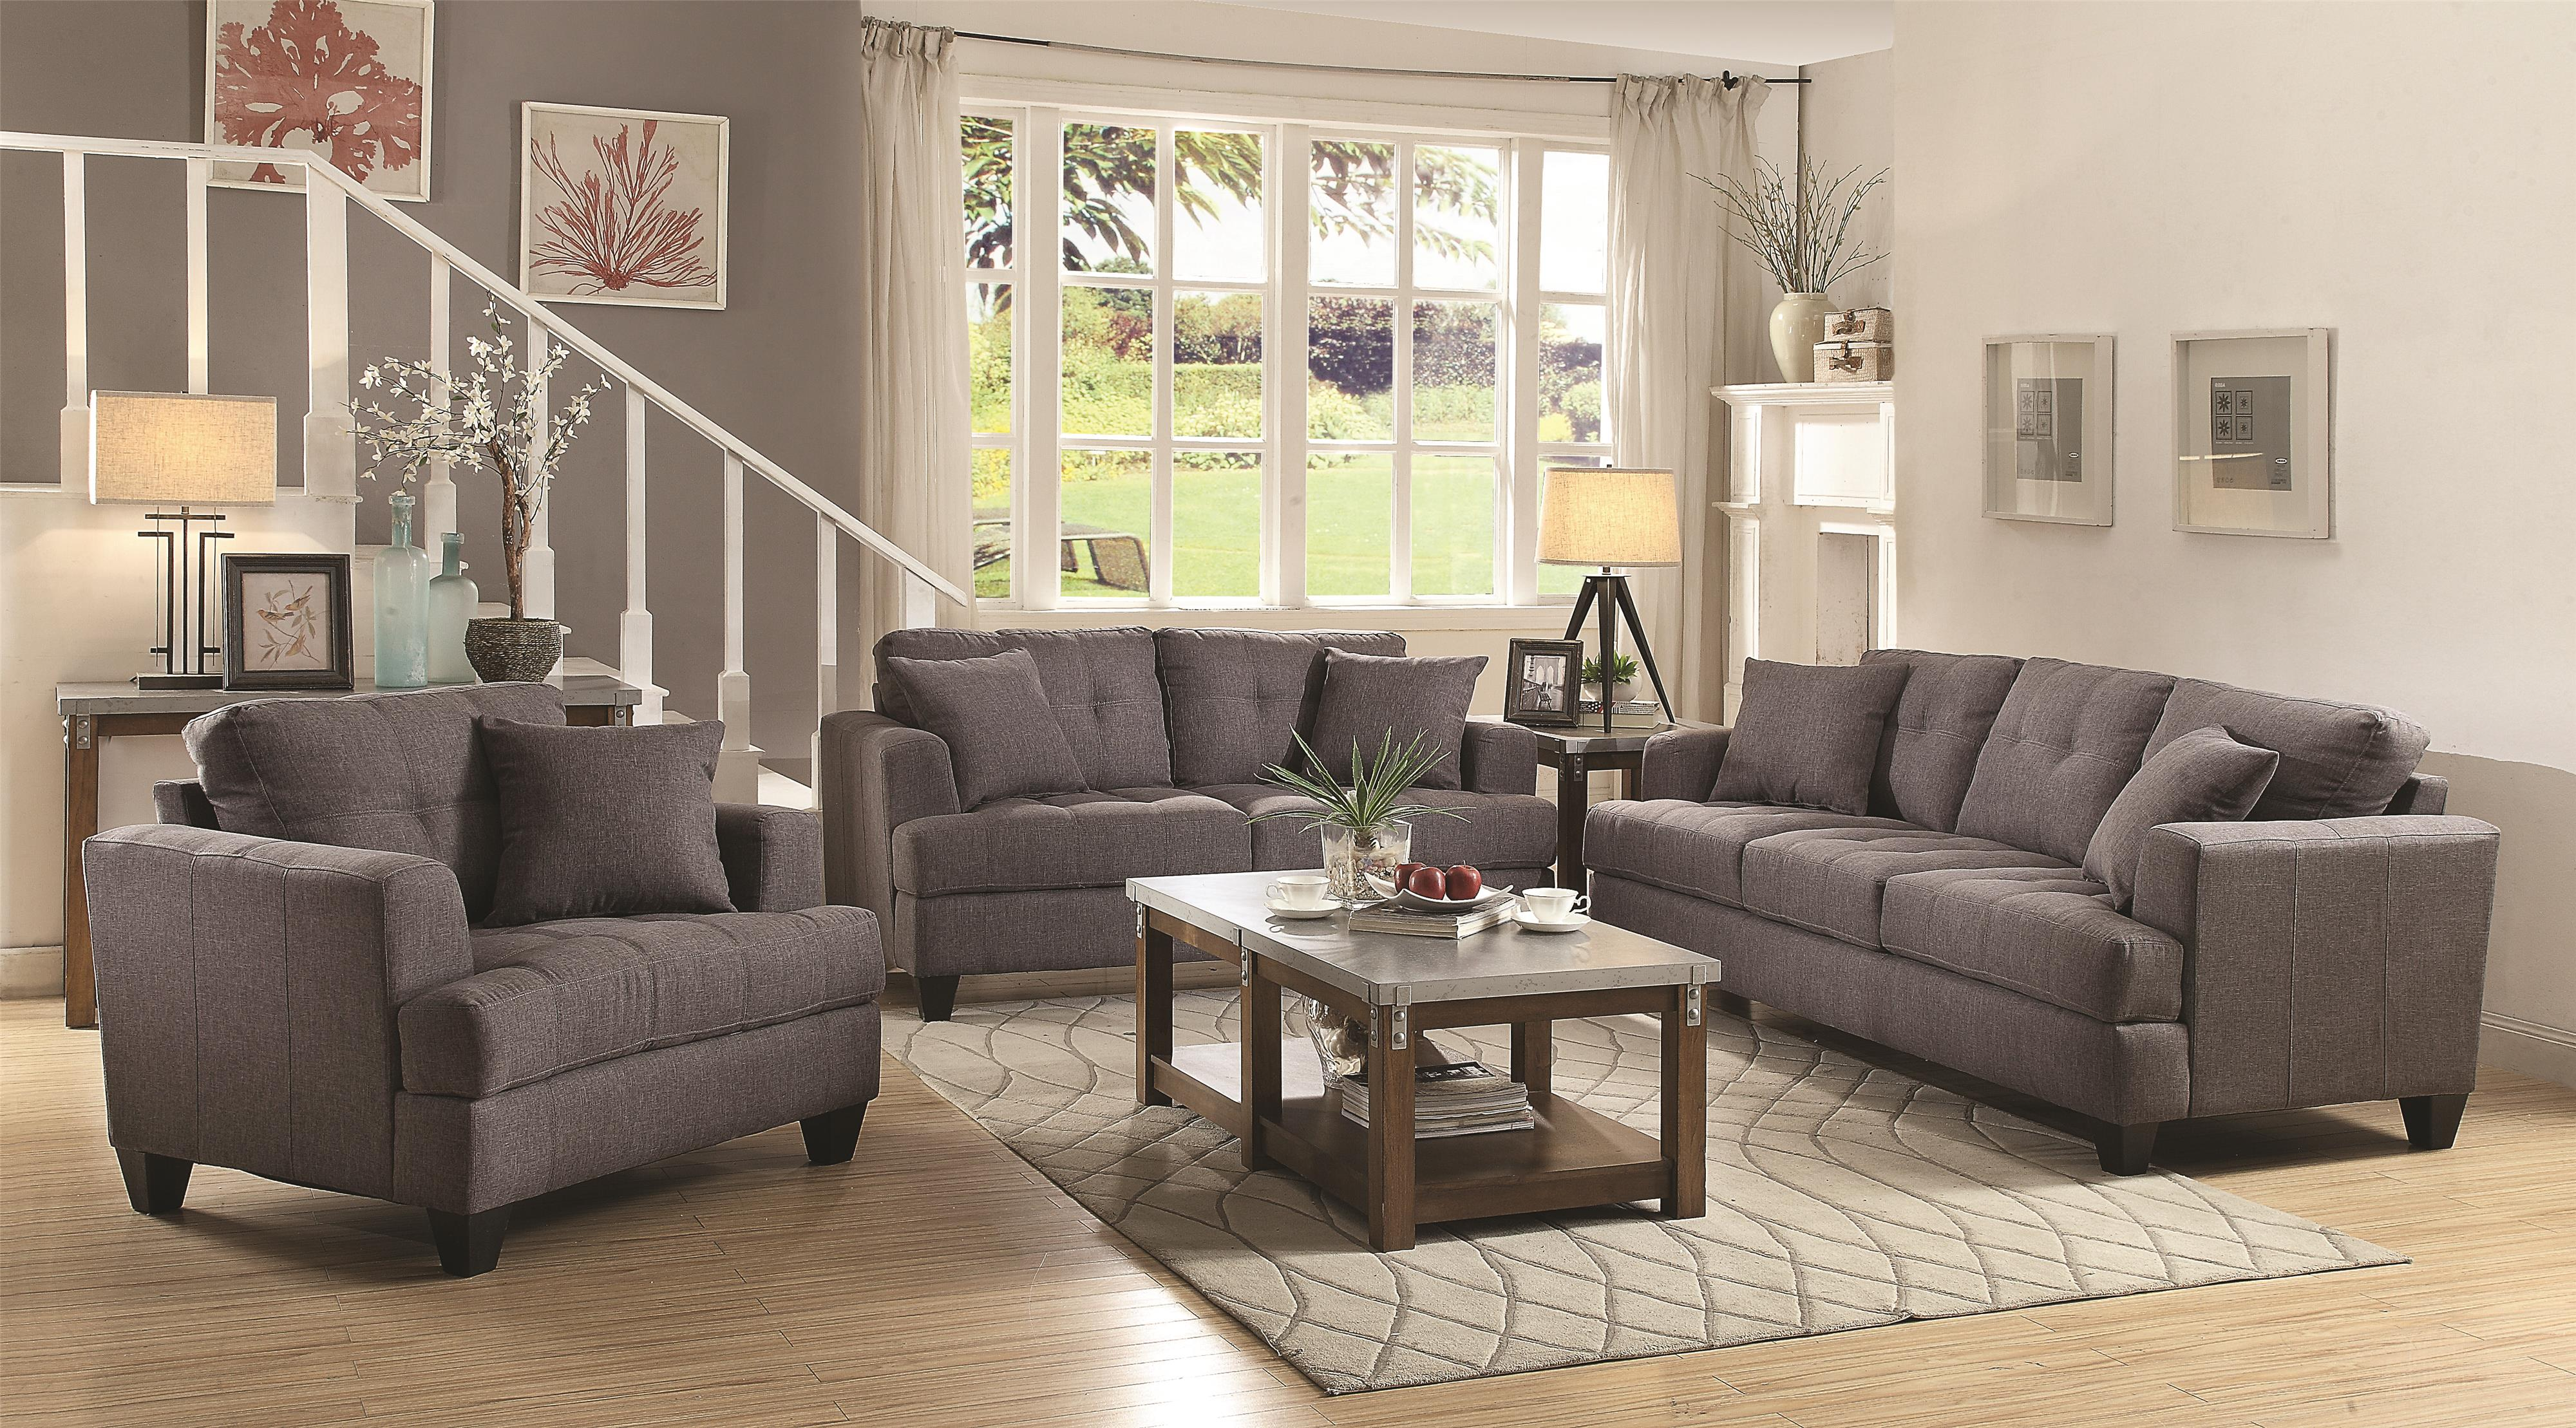 grey set furniture sofa sofas tufted full loveseat cheap of living size and black room gray back livings